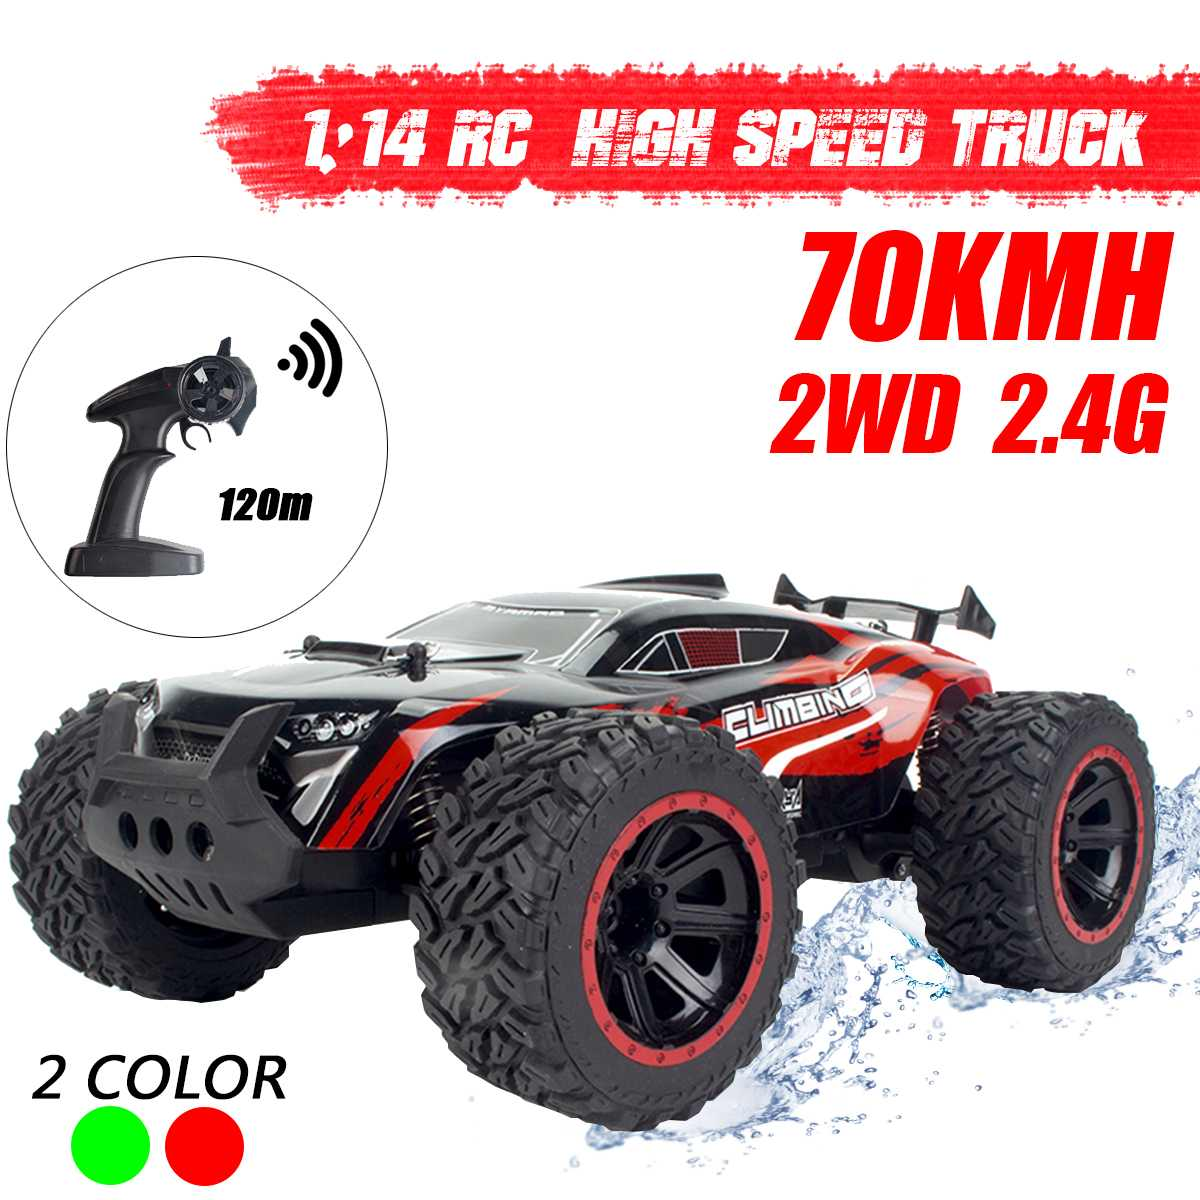 NEW 1:14 70Km//h 2WD RC Remote Control Off Road Racing Car Vehicle 2.4Ghz Crawler